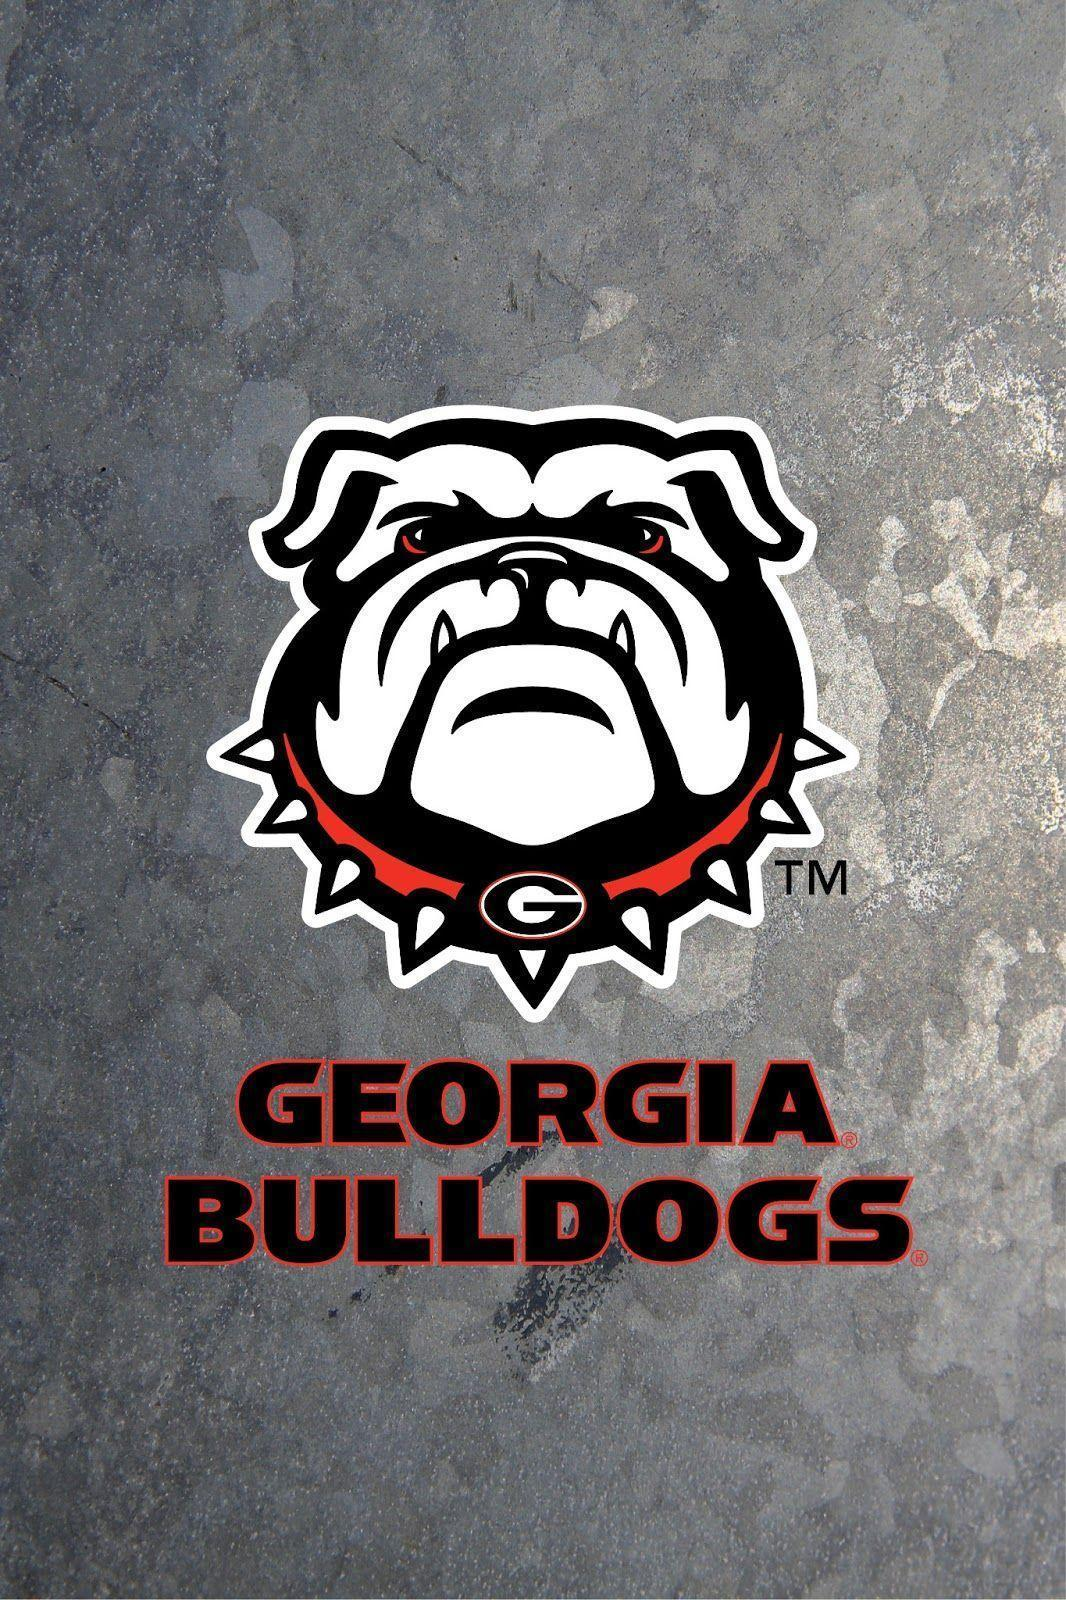 Georgia Bulldogs Wallpaper HD - WallpaperSafari